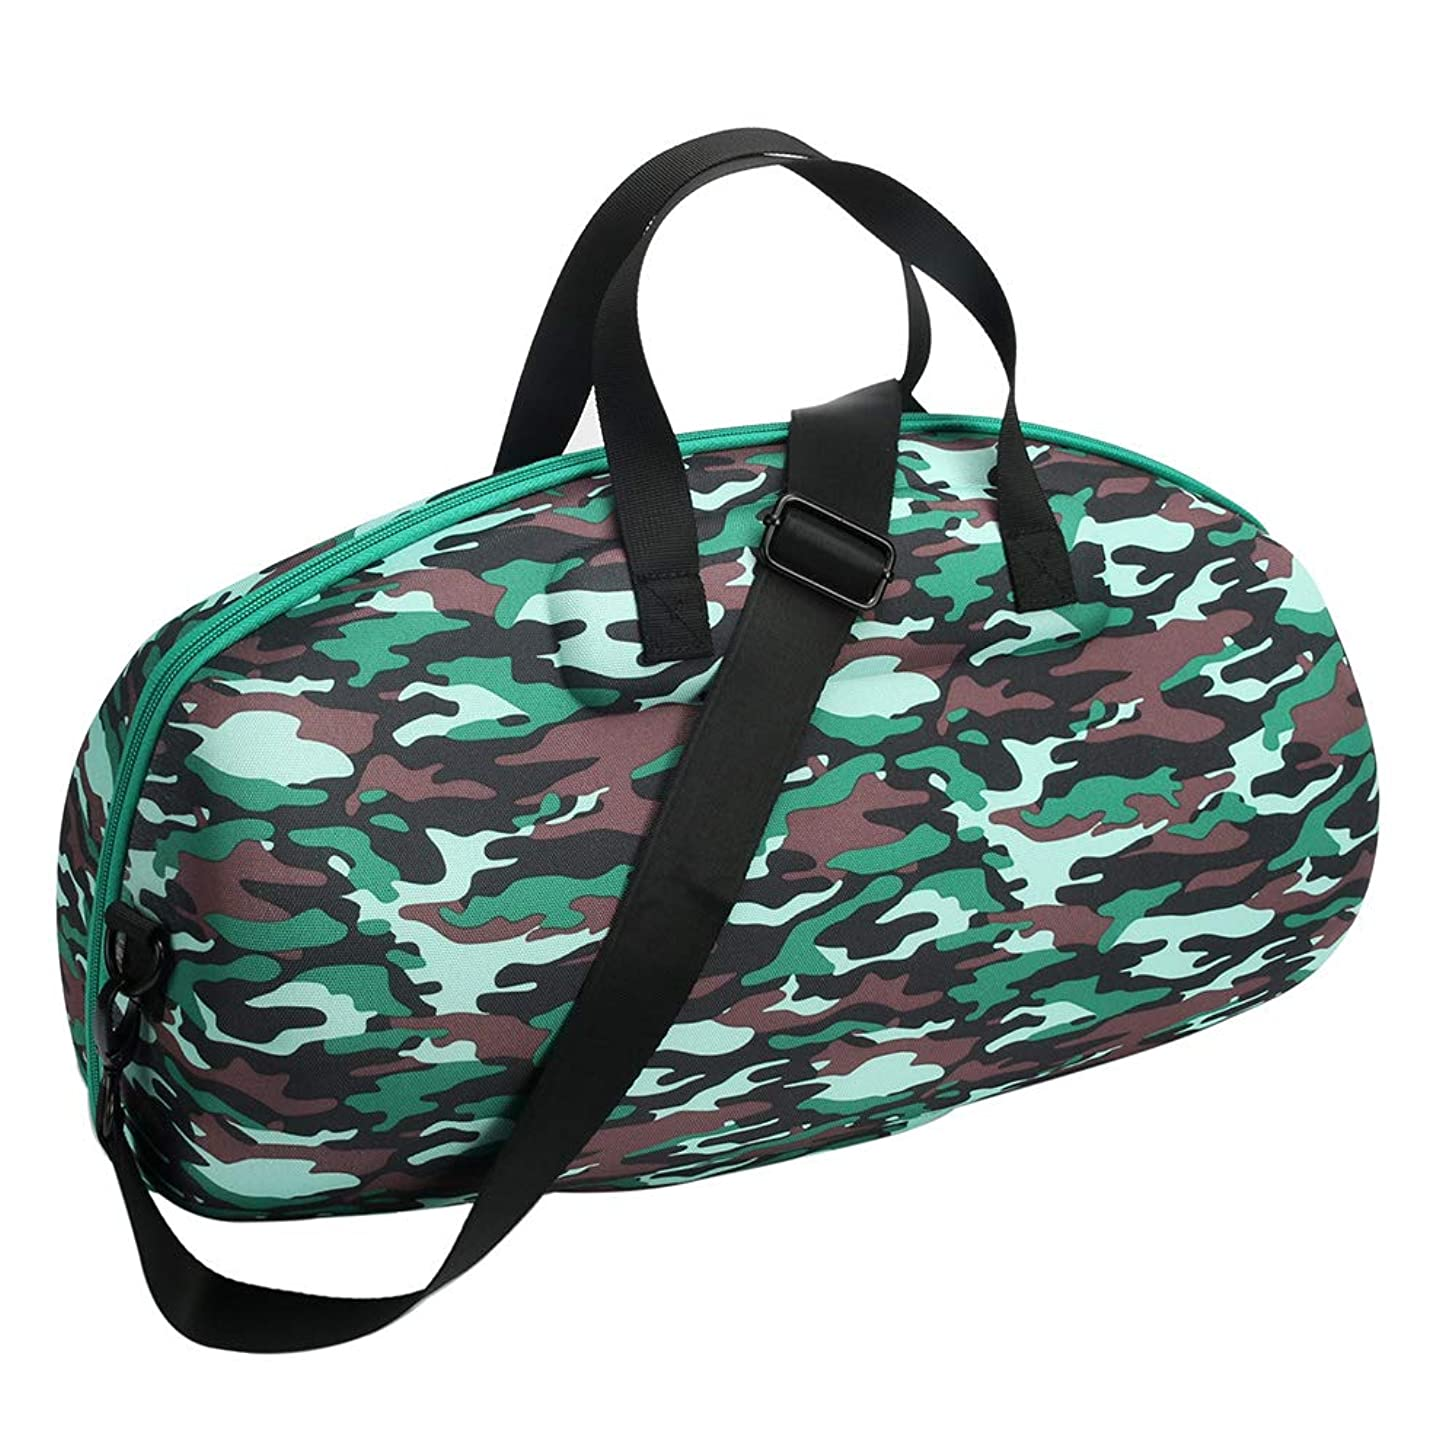 HIJIAO Hard Travelling Case for JBL Boombox Portable Bluetooth Speaker Waterproof Durable Enough Speaker case(Camouflage)